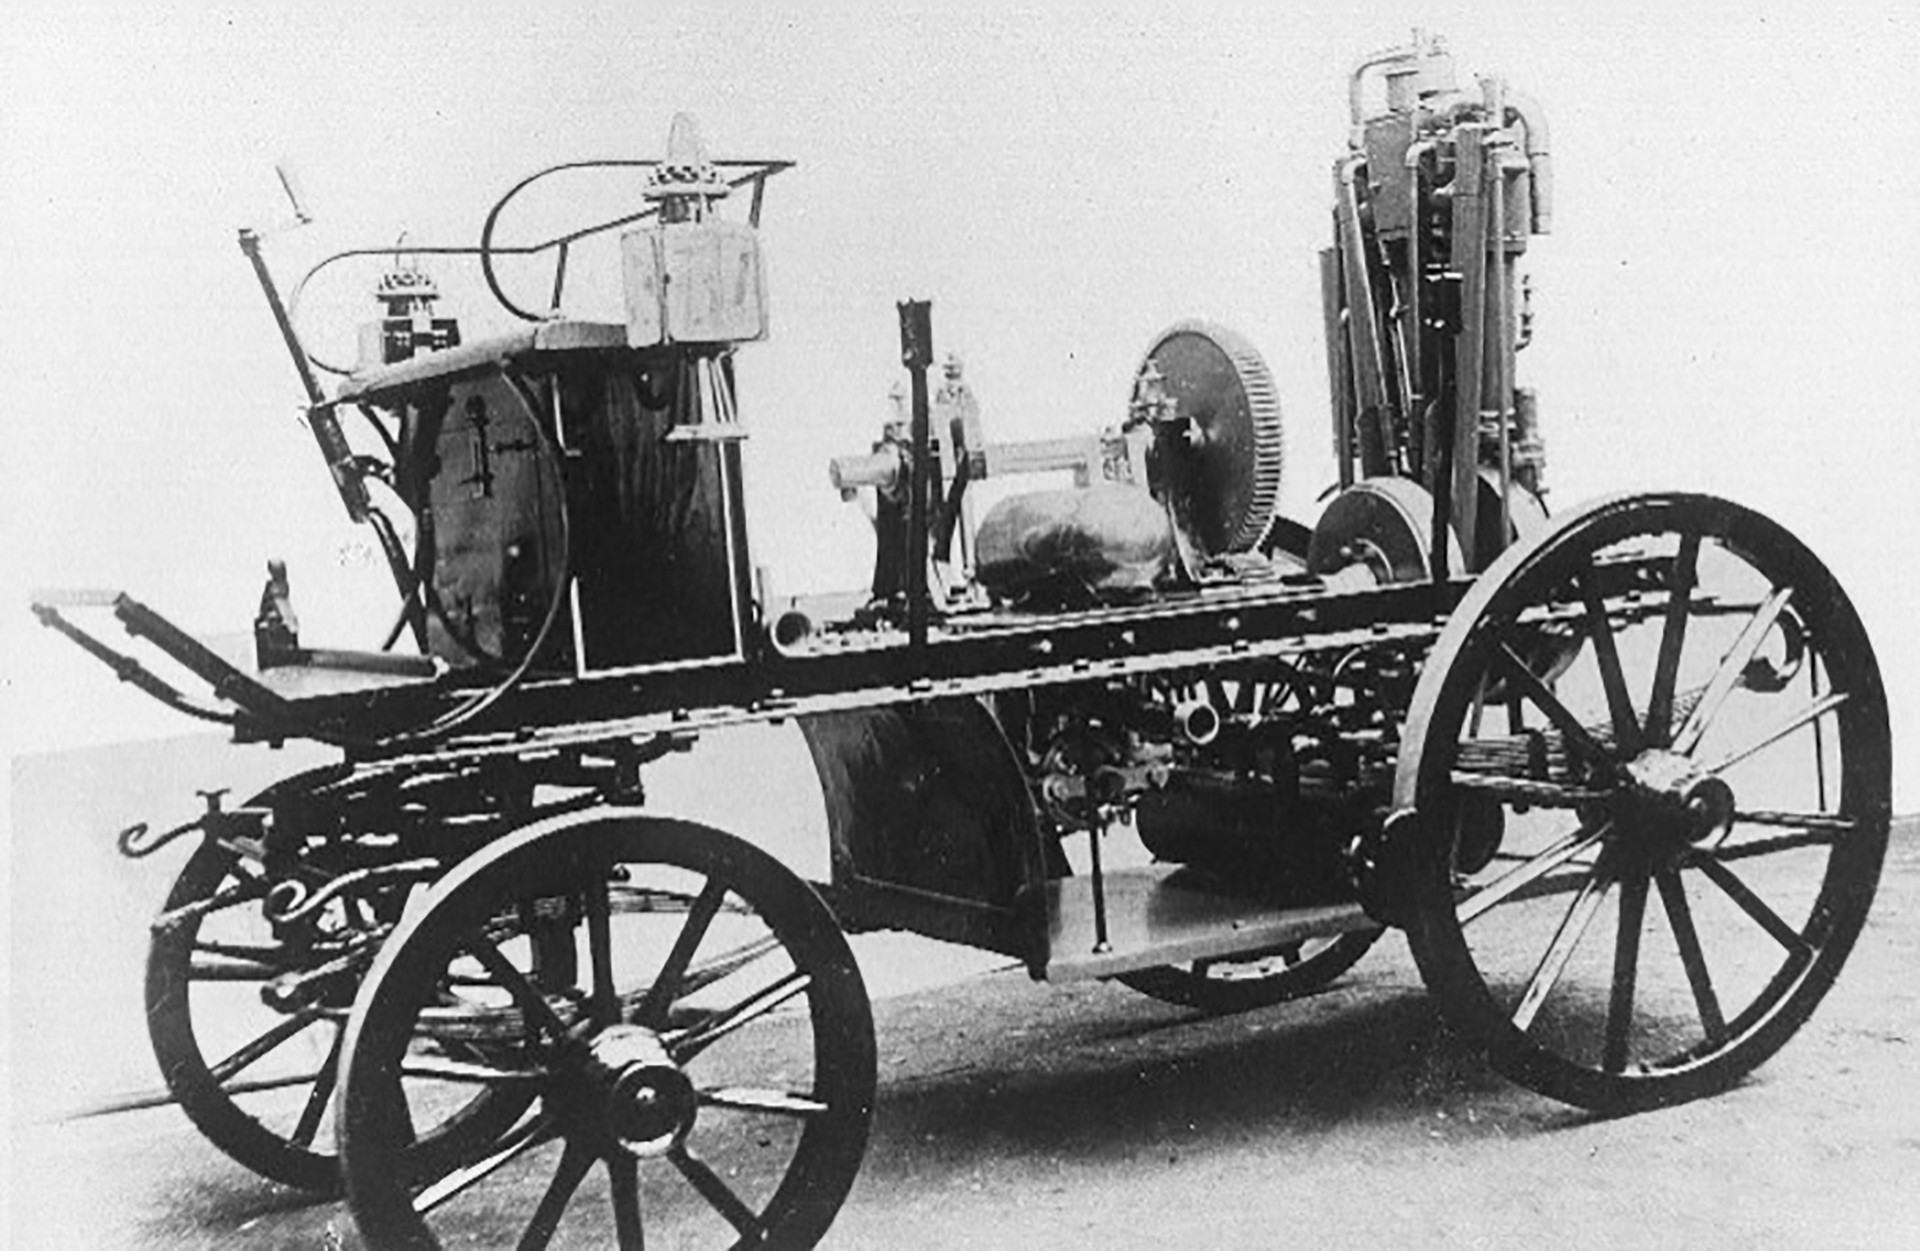 One of the first vehicles produced by the Daimler company.